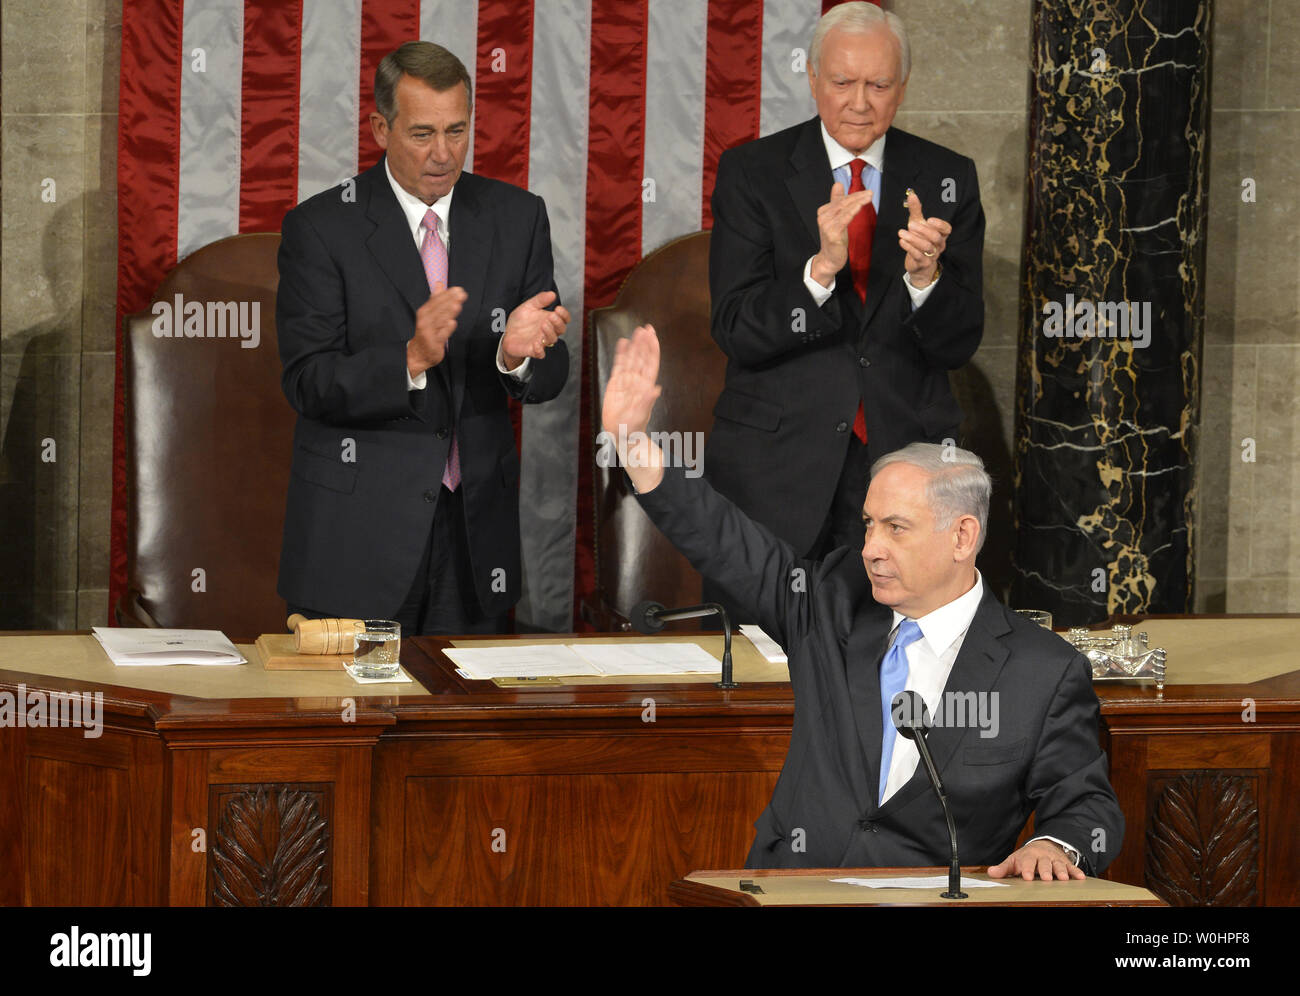 Israeli Prime Minister Benjamin Netanyahu waves at the conclusion of his address to a joint meeting of Congress on nuclear talks with Iran, as House Speaker John Boehner (R-OH),(L), and Sen. Orrin Hatch (R-UT) applaud, at the U.S. Capitol, March 3, 2015, in Washington, DC. The controversial speech, seen by many as interfering in American and Israeli politics prompted many congressmen to boycott the event.   UPI/Mike Theiler - Stock Image